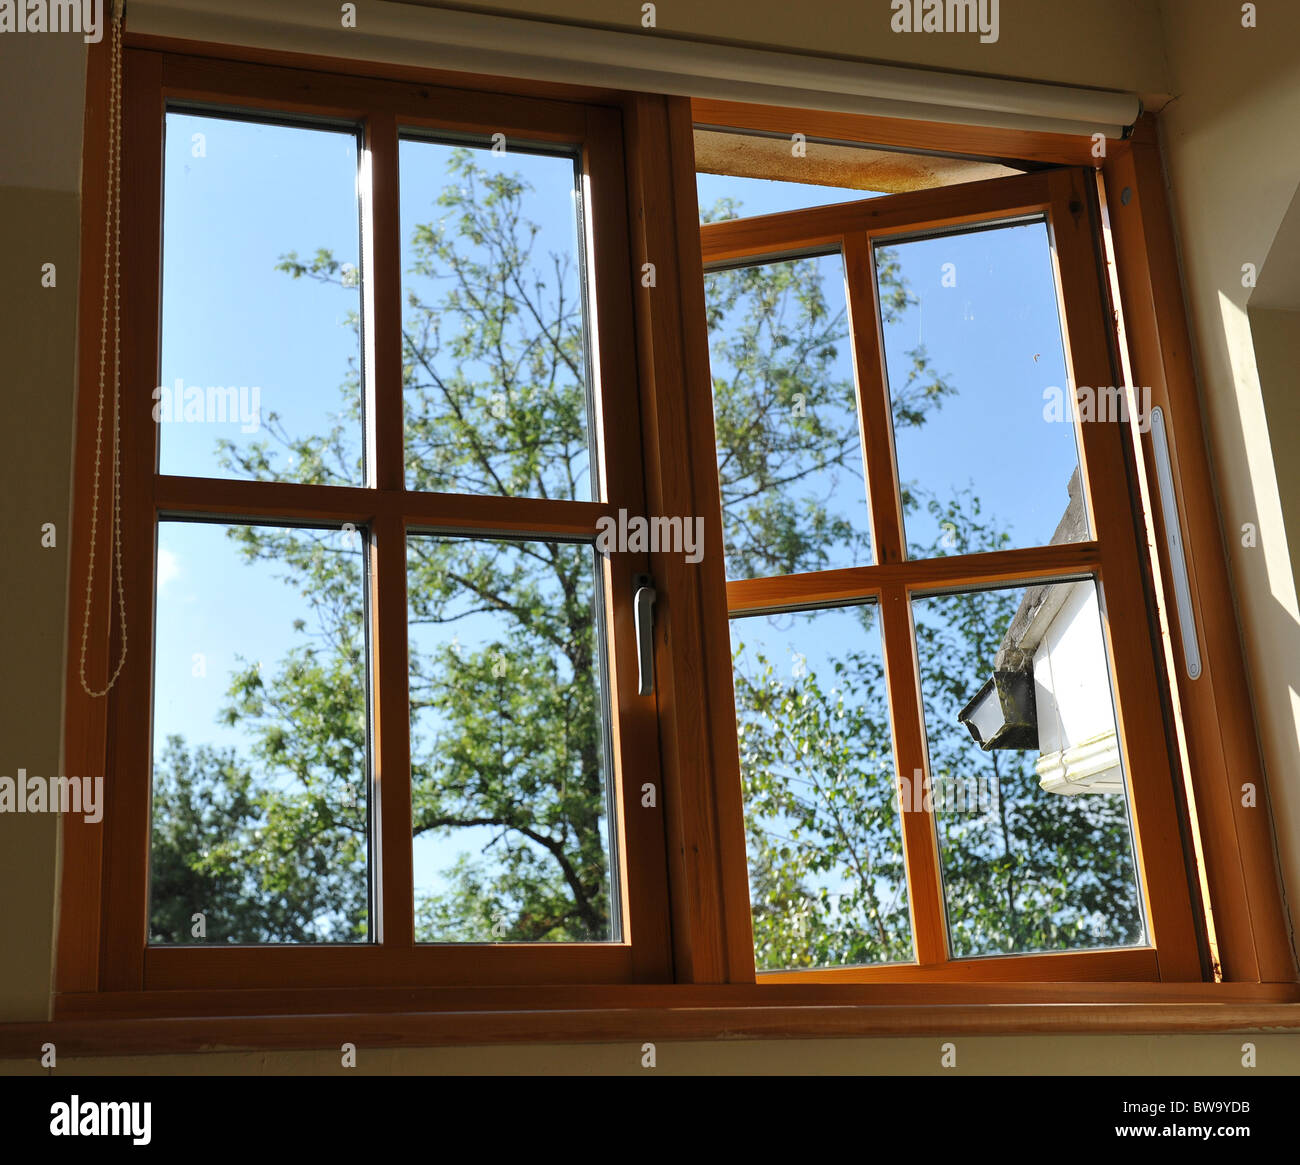 Double glazed wooden window frame in the home